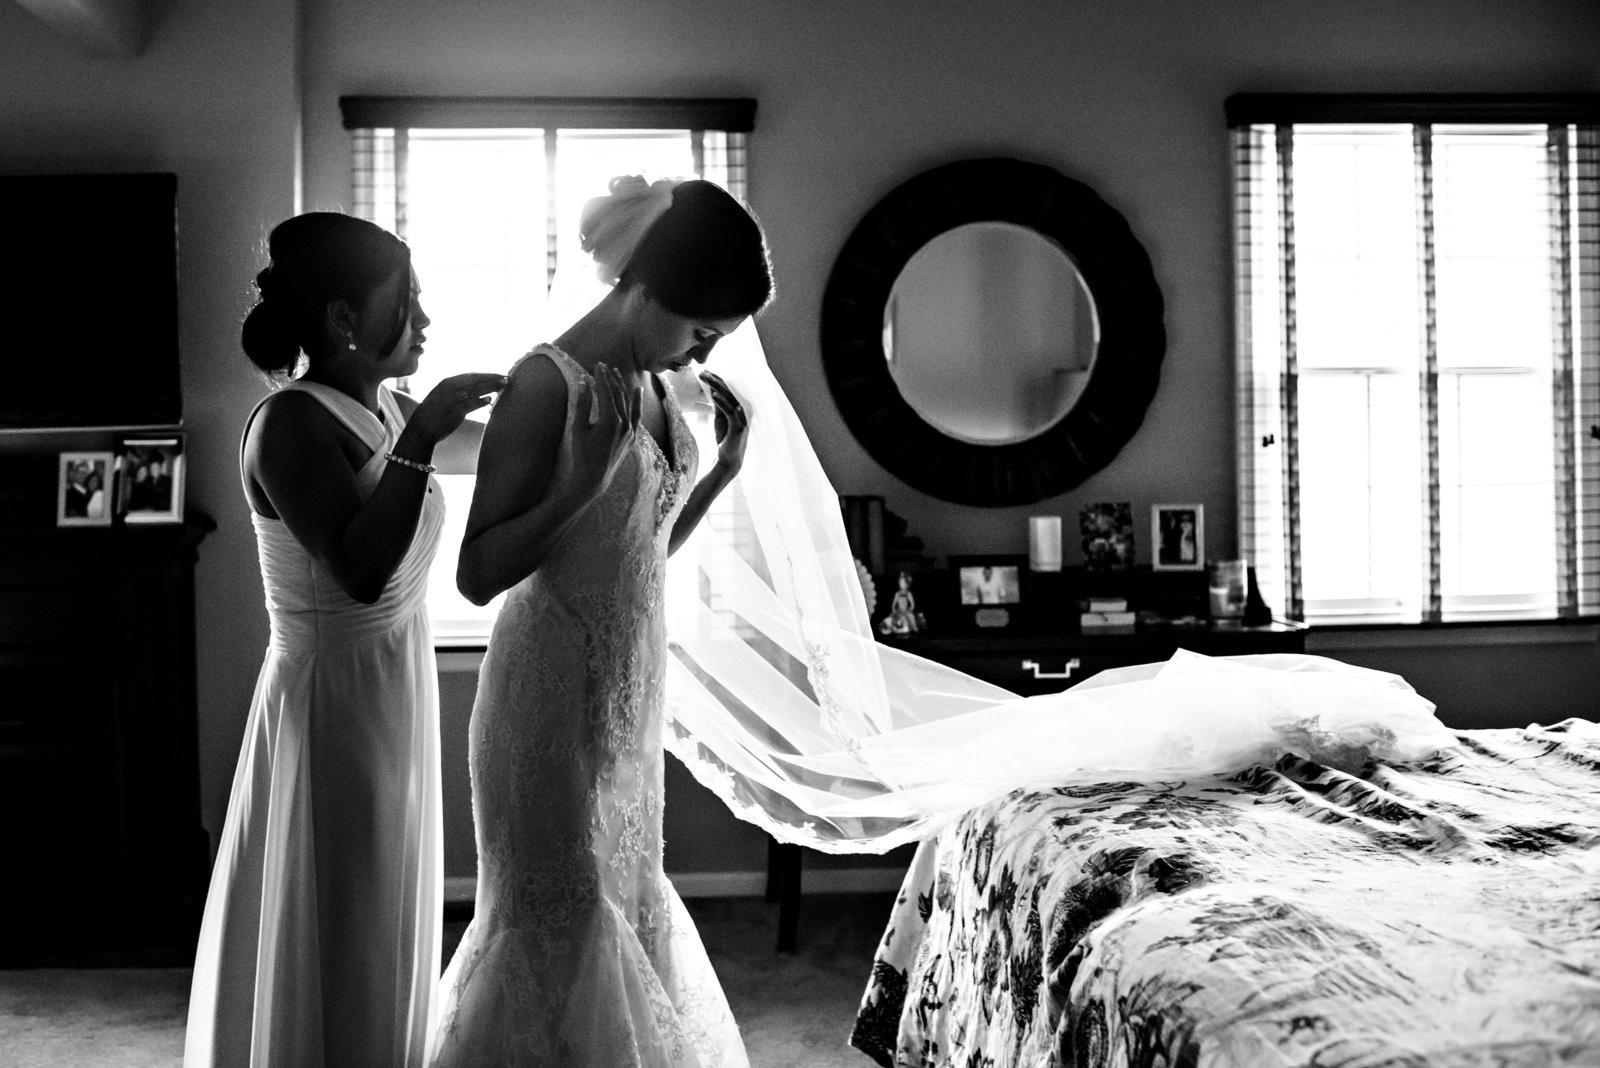 The maid of honor helps a bride put on her wedding dress in her childhood bedroom.